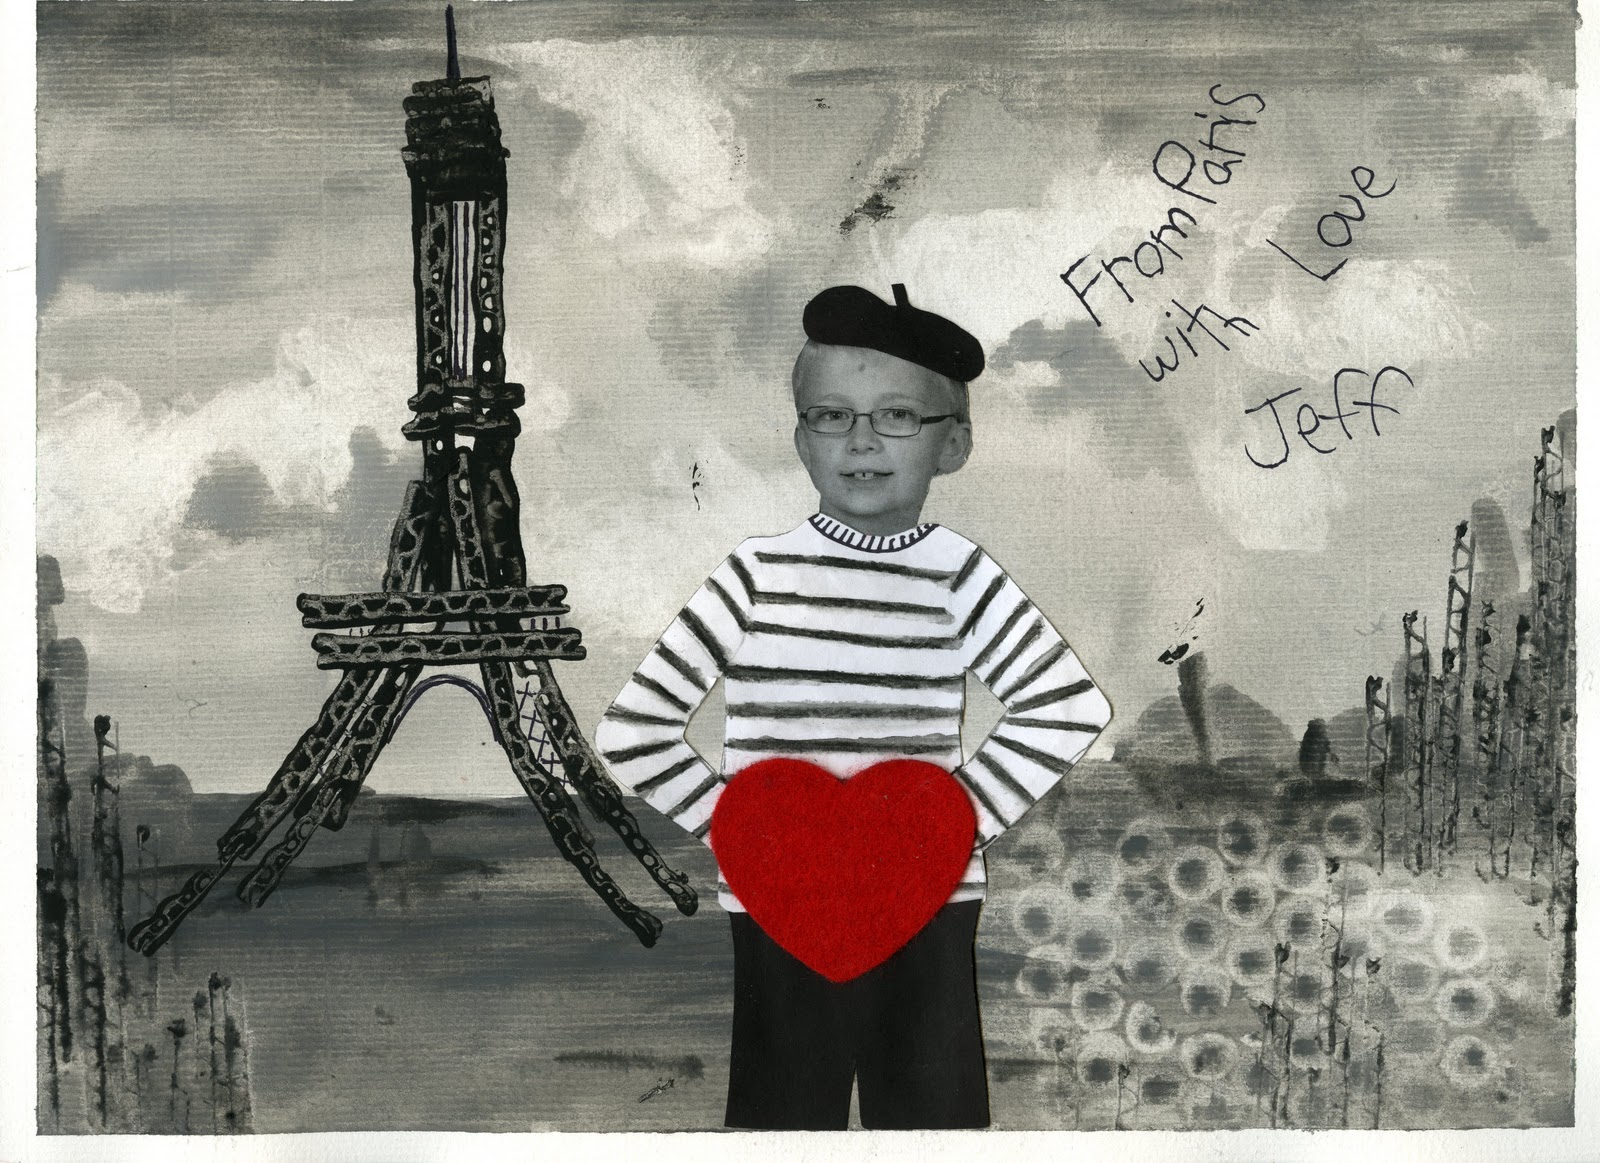 Black And White Postcard From >> That Artist Woman Postcard From Paris Valentine